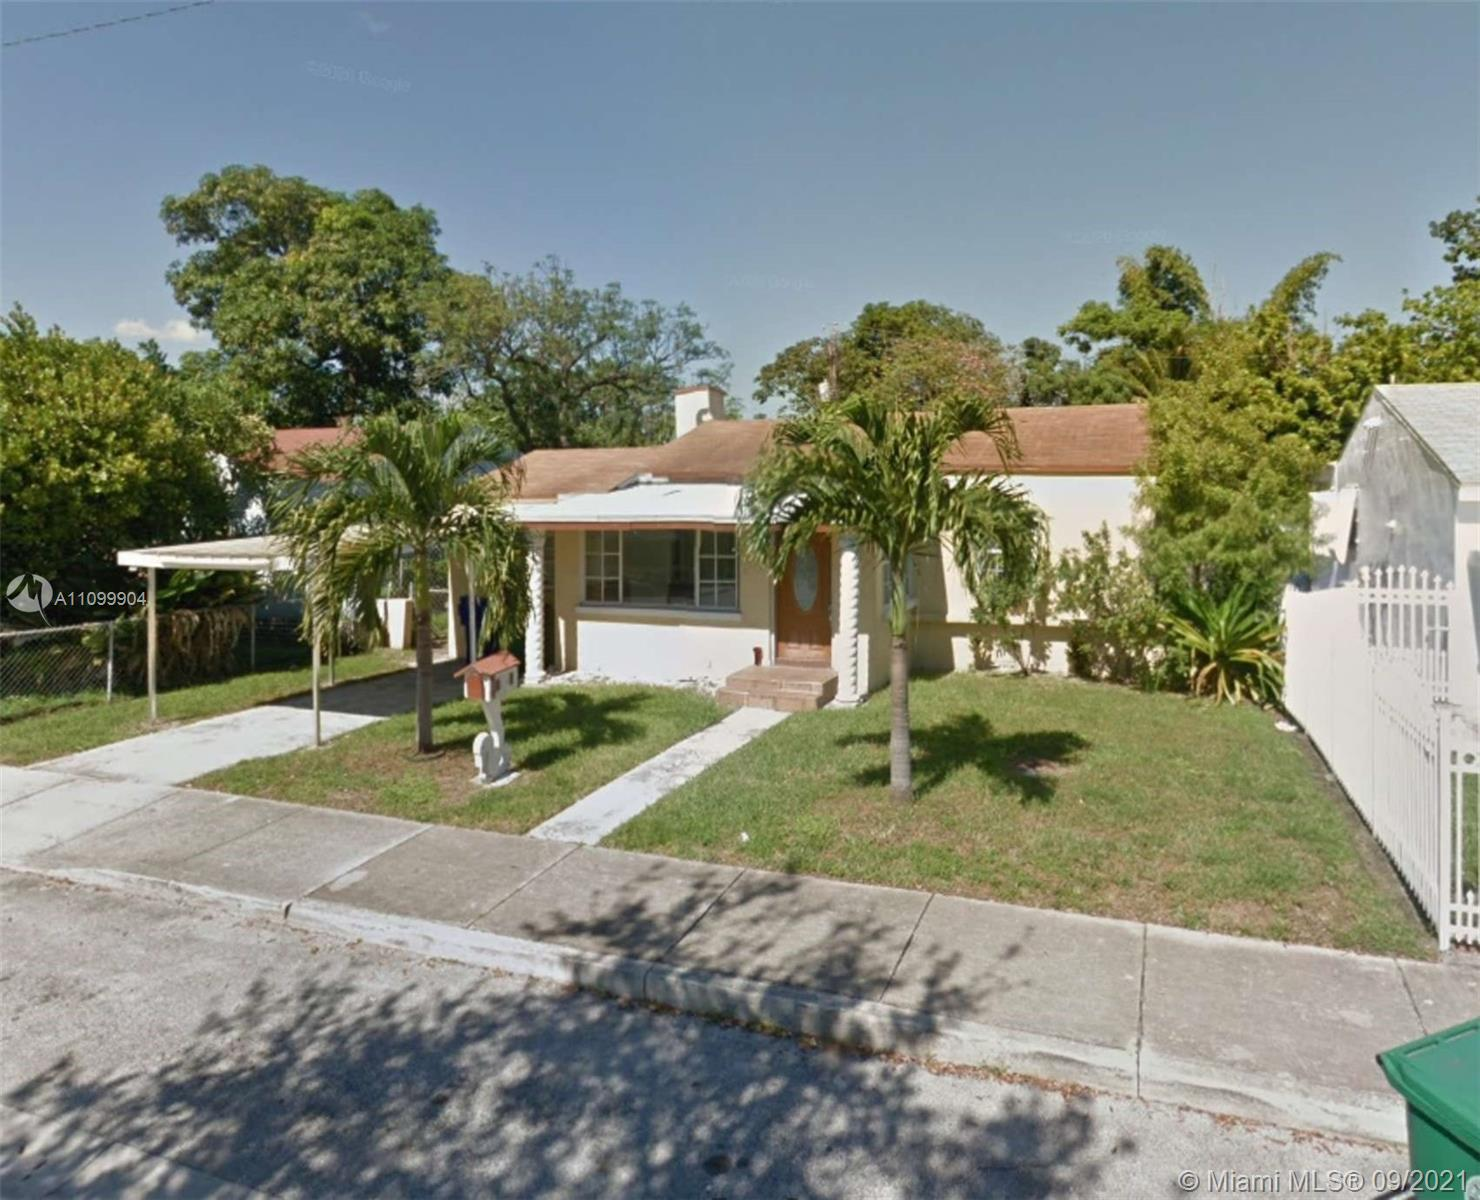 Single Family Home,For Sale,541 NW 49th St, Miami, Florida 33127,Brickell,realty,broker,condos near me